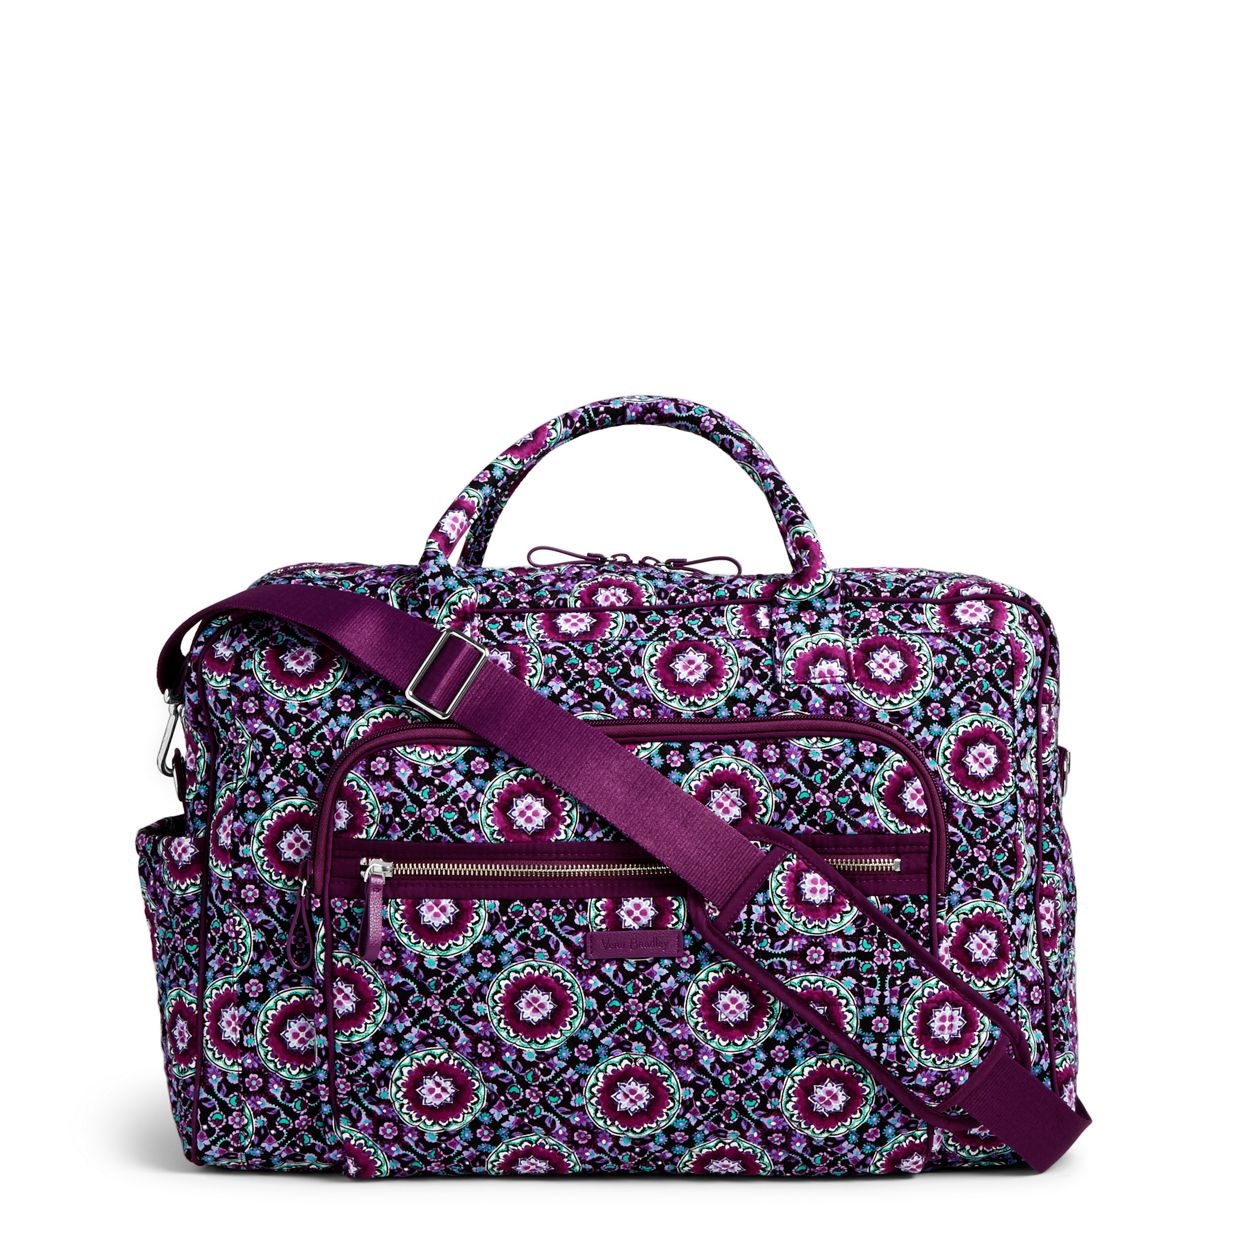 Image of Iconic Weekender Travel Bag in Lilac Medallion be4fa65bed443